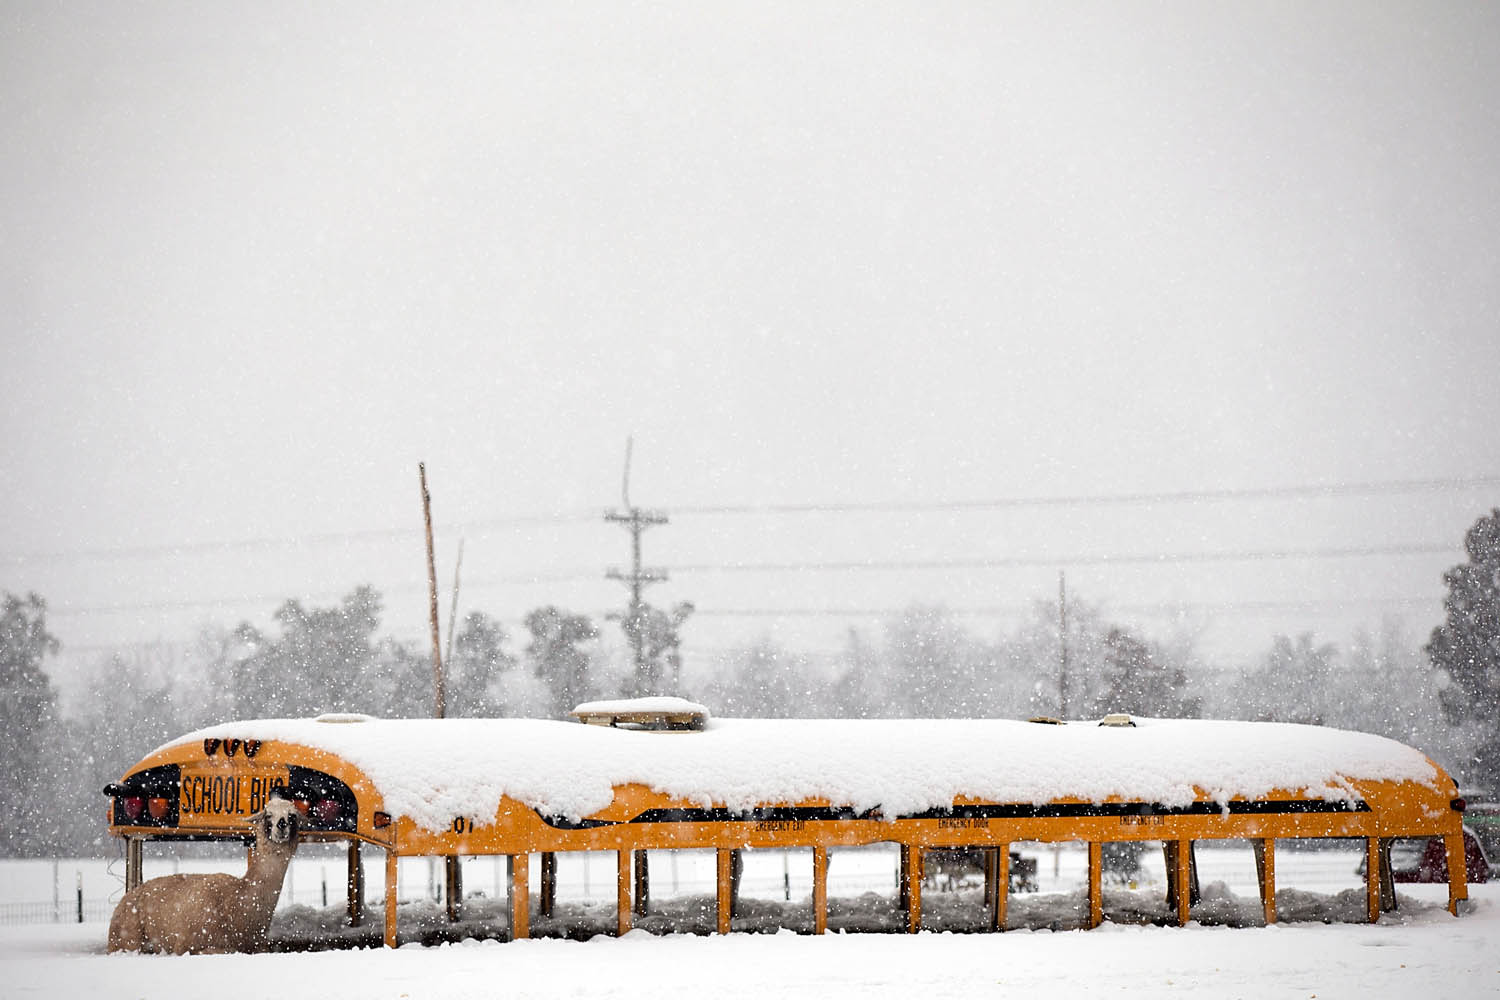 March 6, 2013.  A llama seeks shelter next to an abandoned school bus at Cox Farms in Centreville, Va.